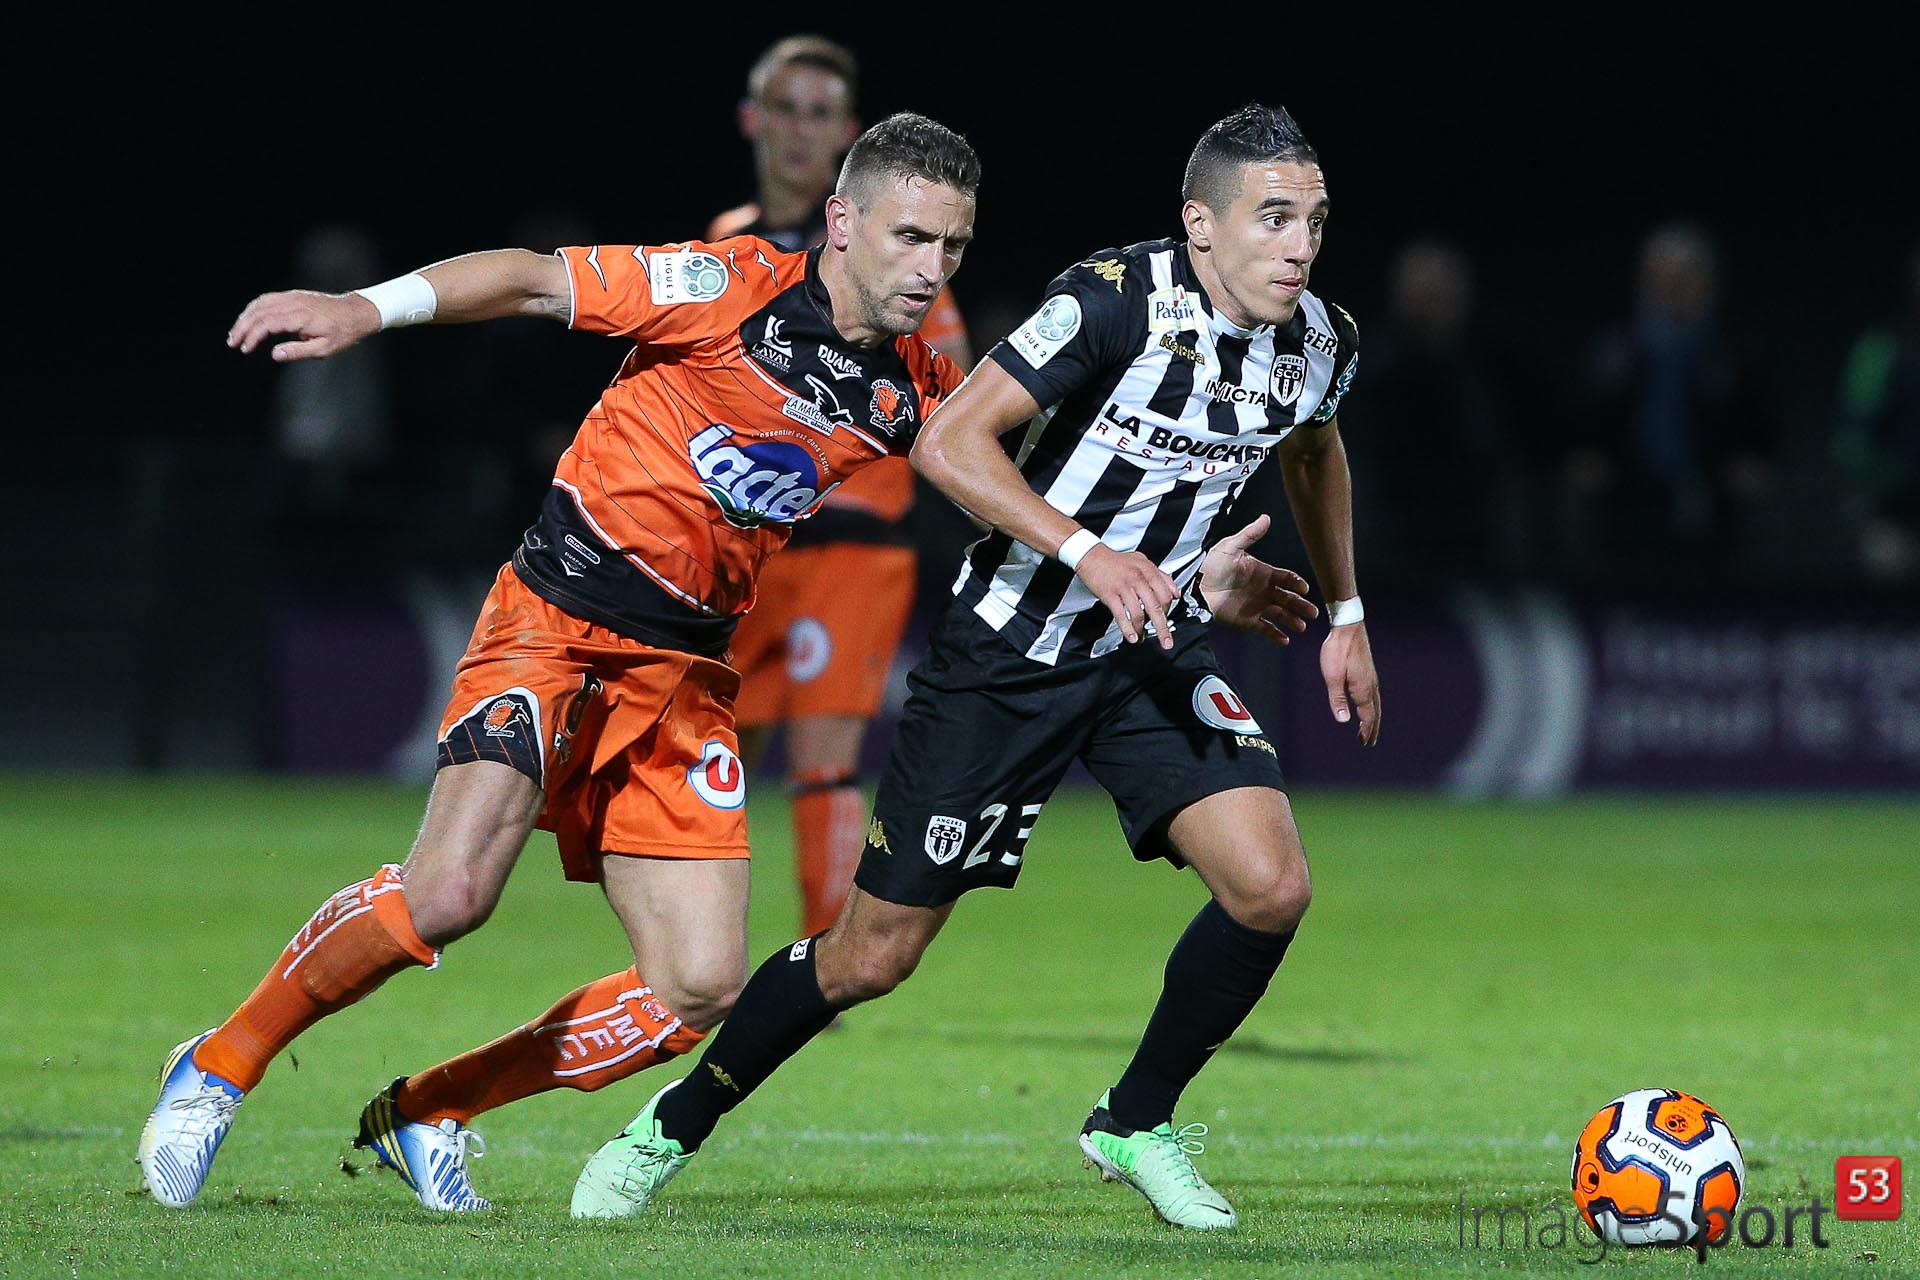 NG_1314_Ligue2_J06_Laval-Angers_9